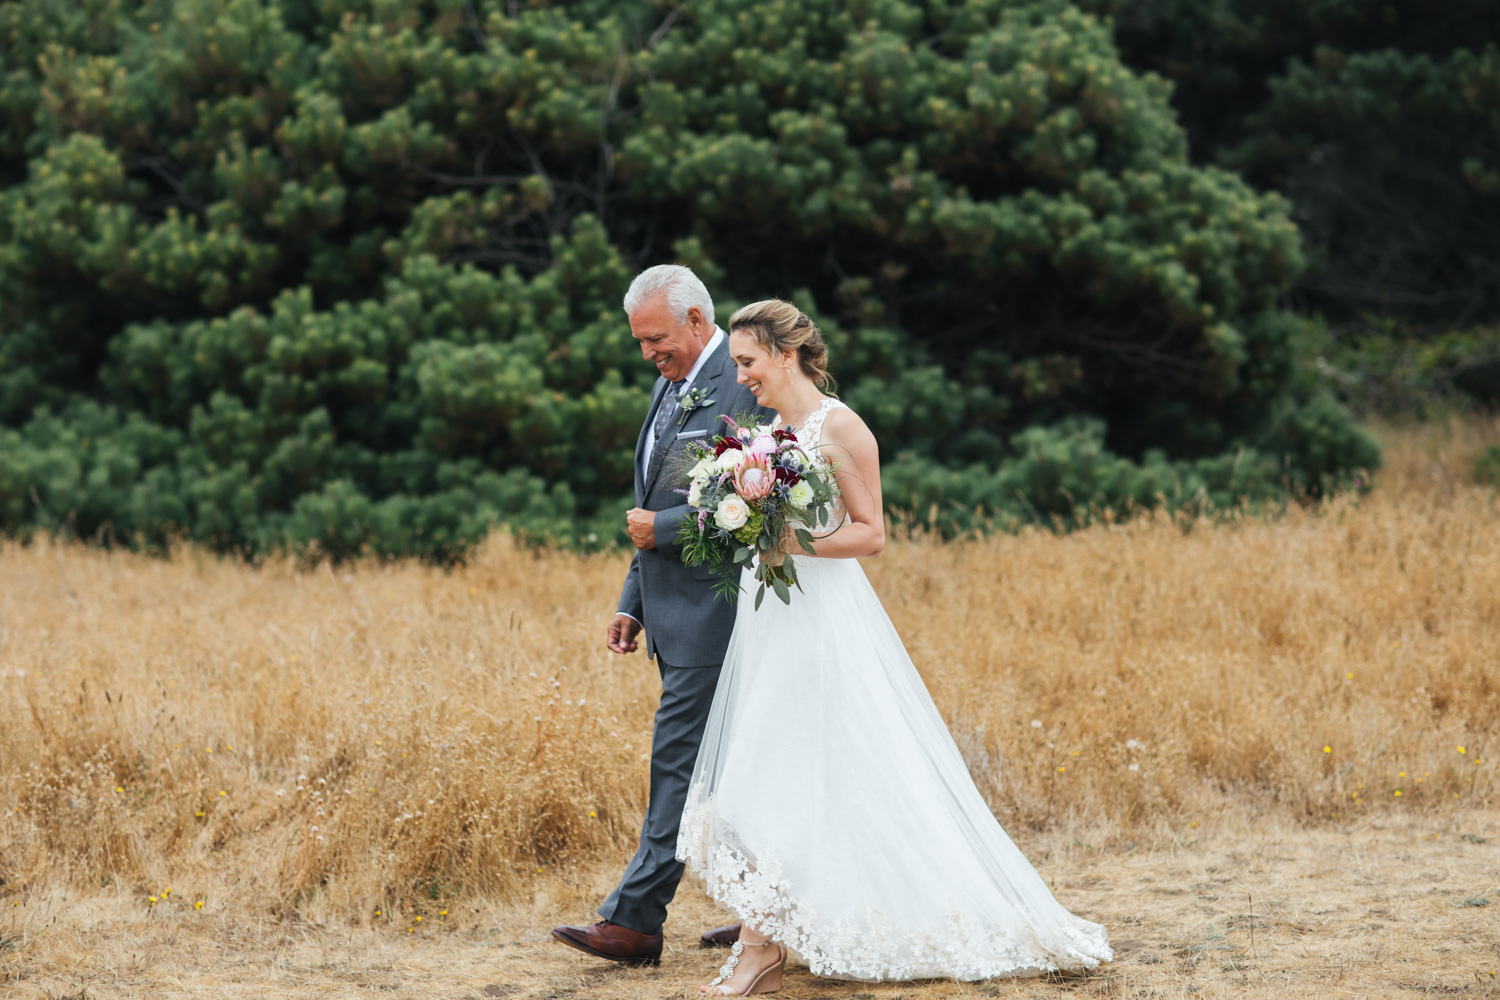 mendocino-wedding-photographer-2.jpg